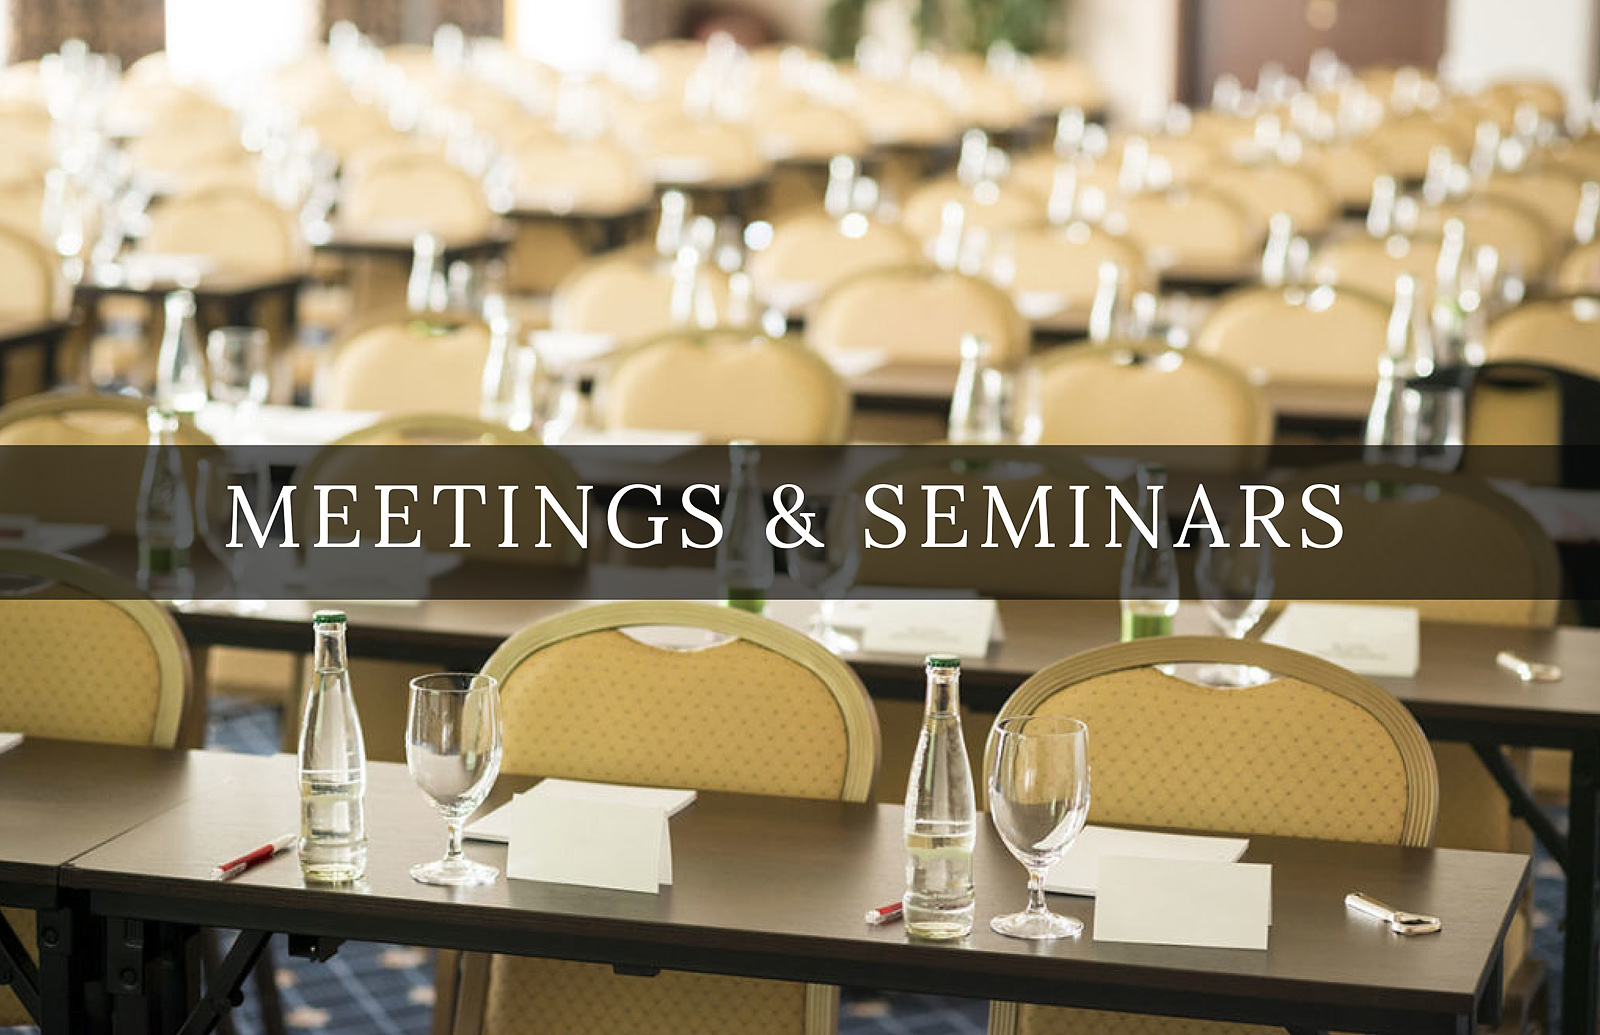 Meetings & Seminars